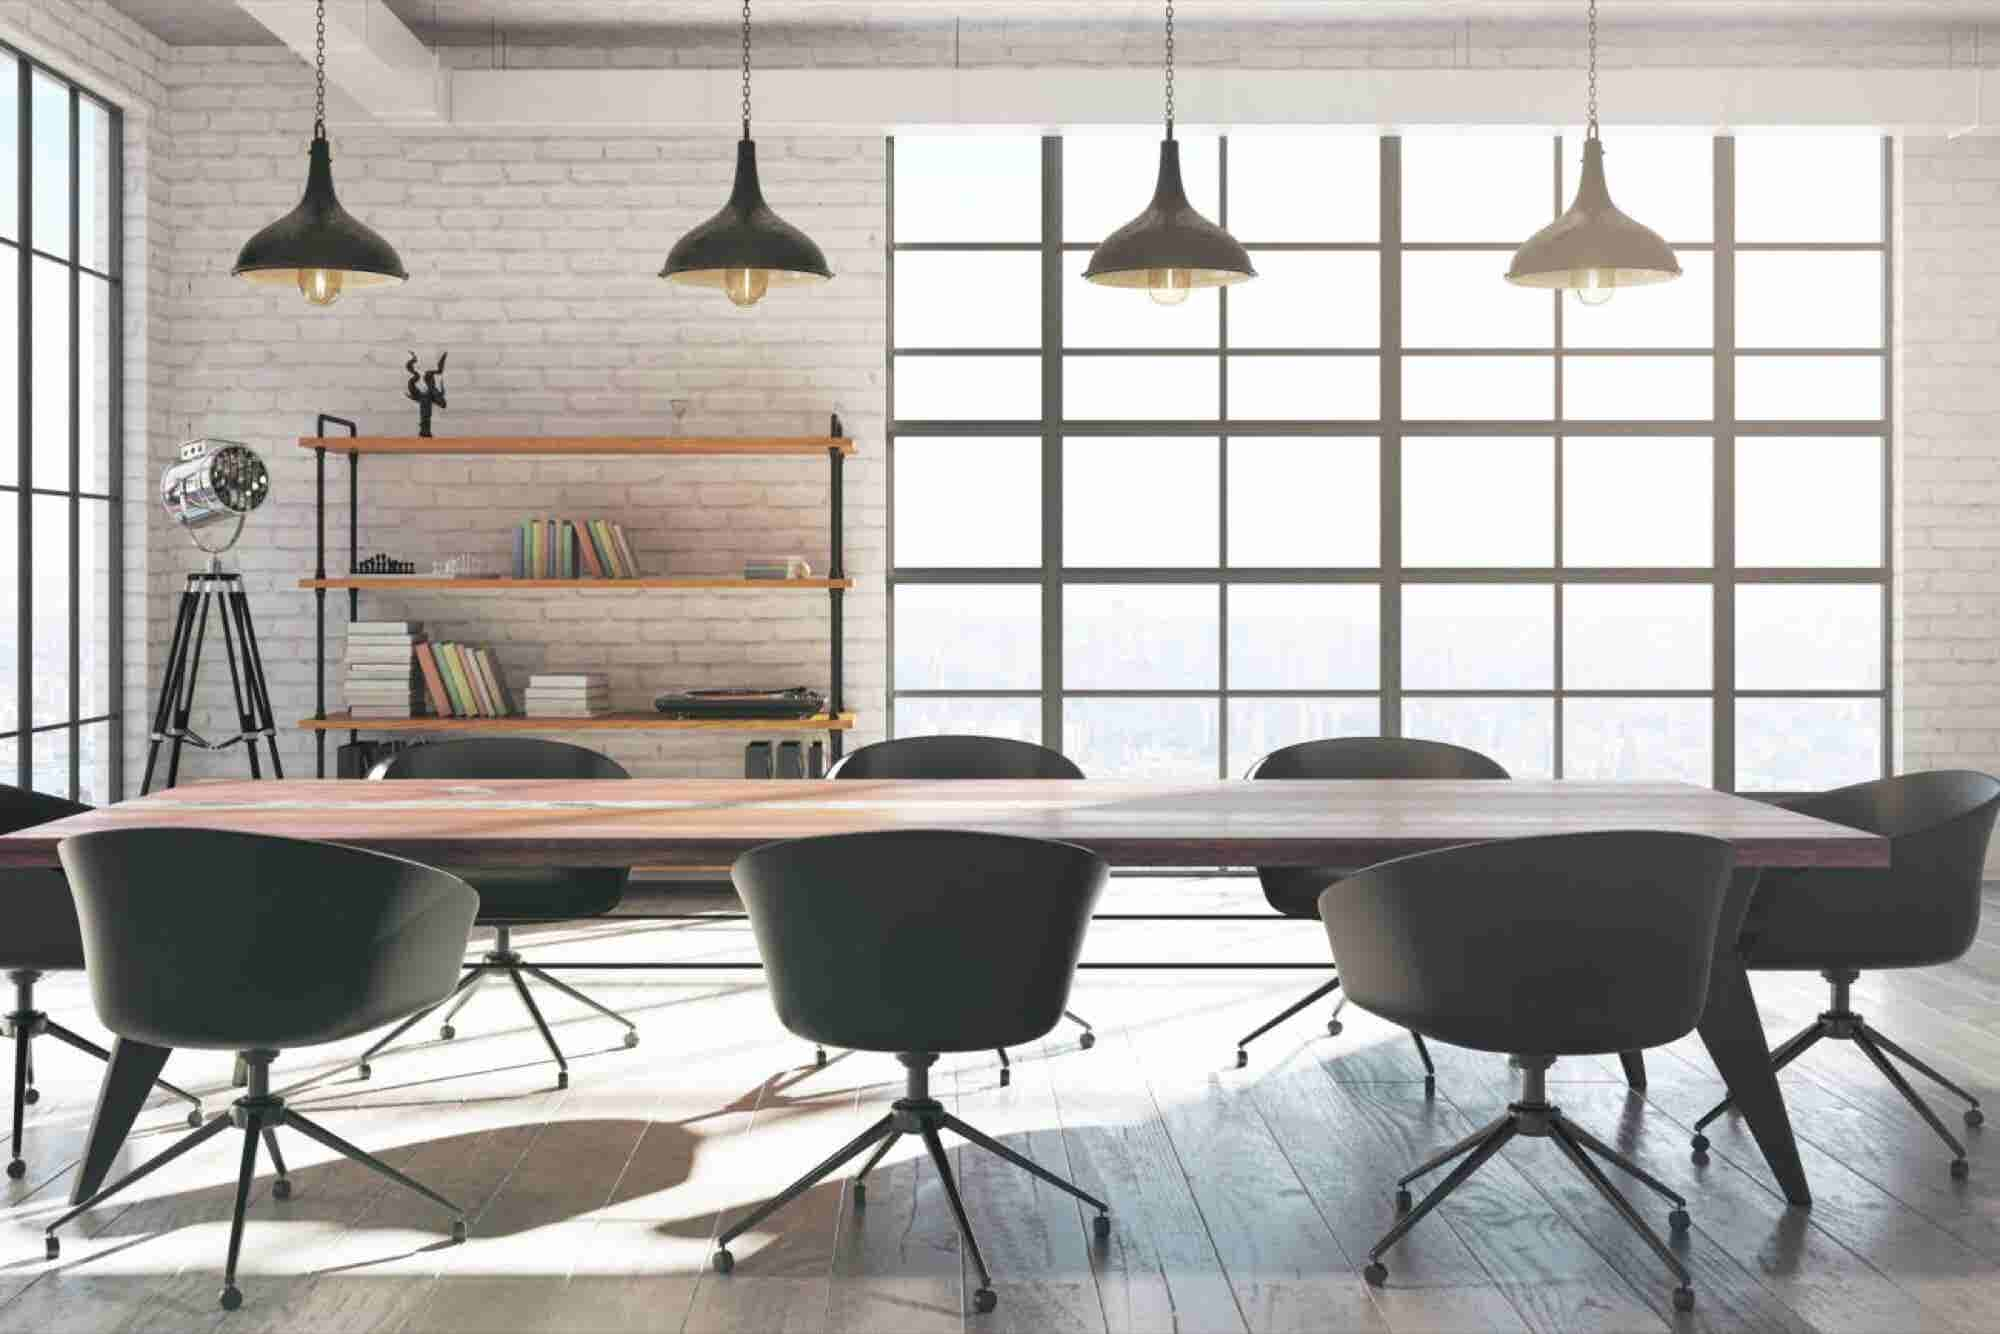 This One Aspect of Your Office Design Is Wasting a Lot of Time and Money